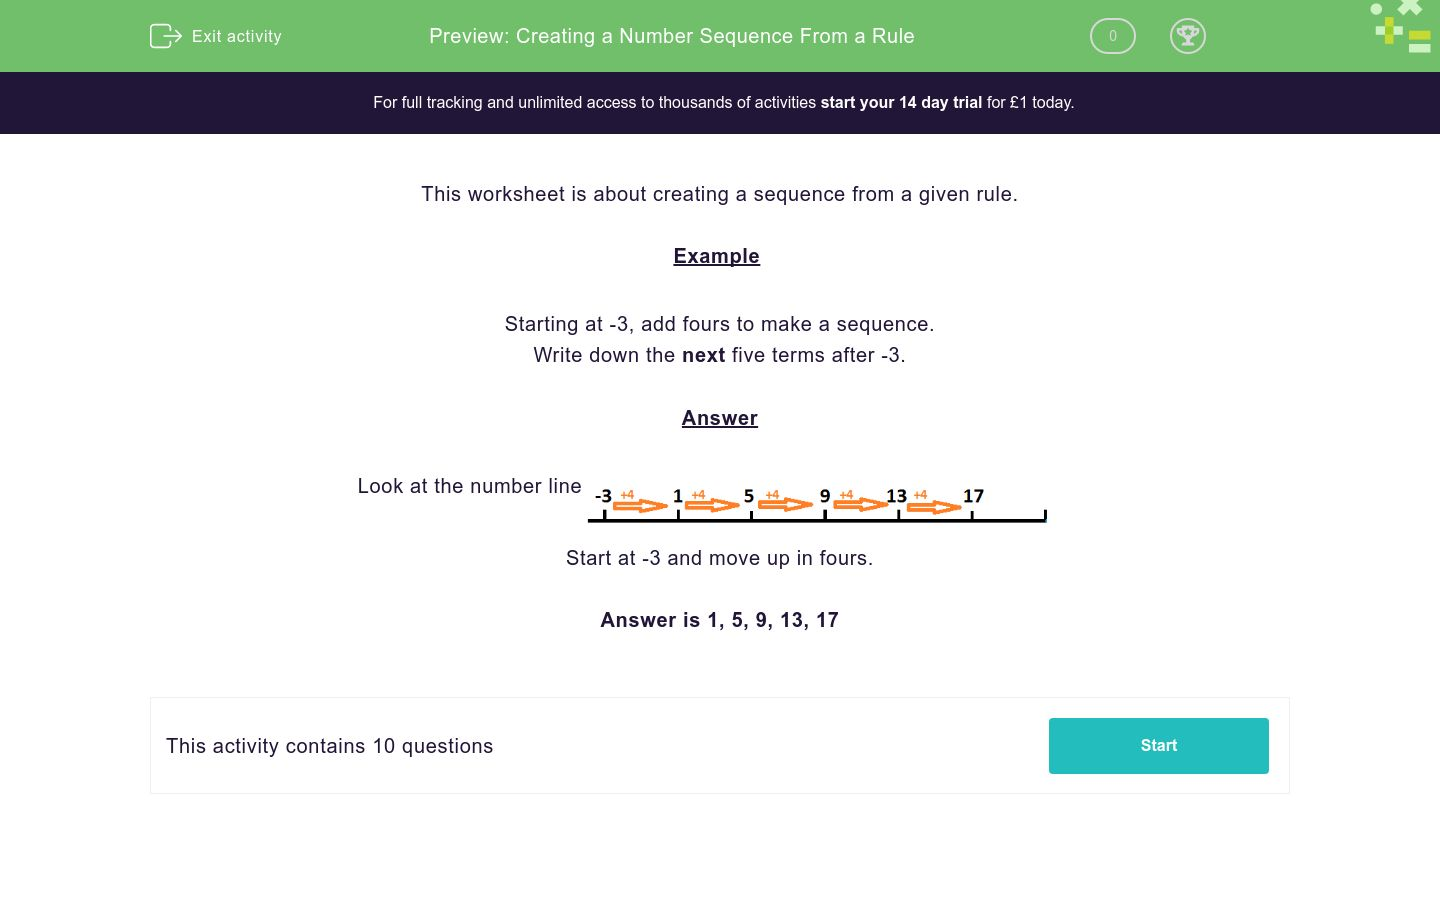 'Creating a Number Sequence From a Rule' worksheet